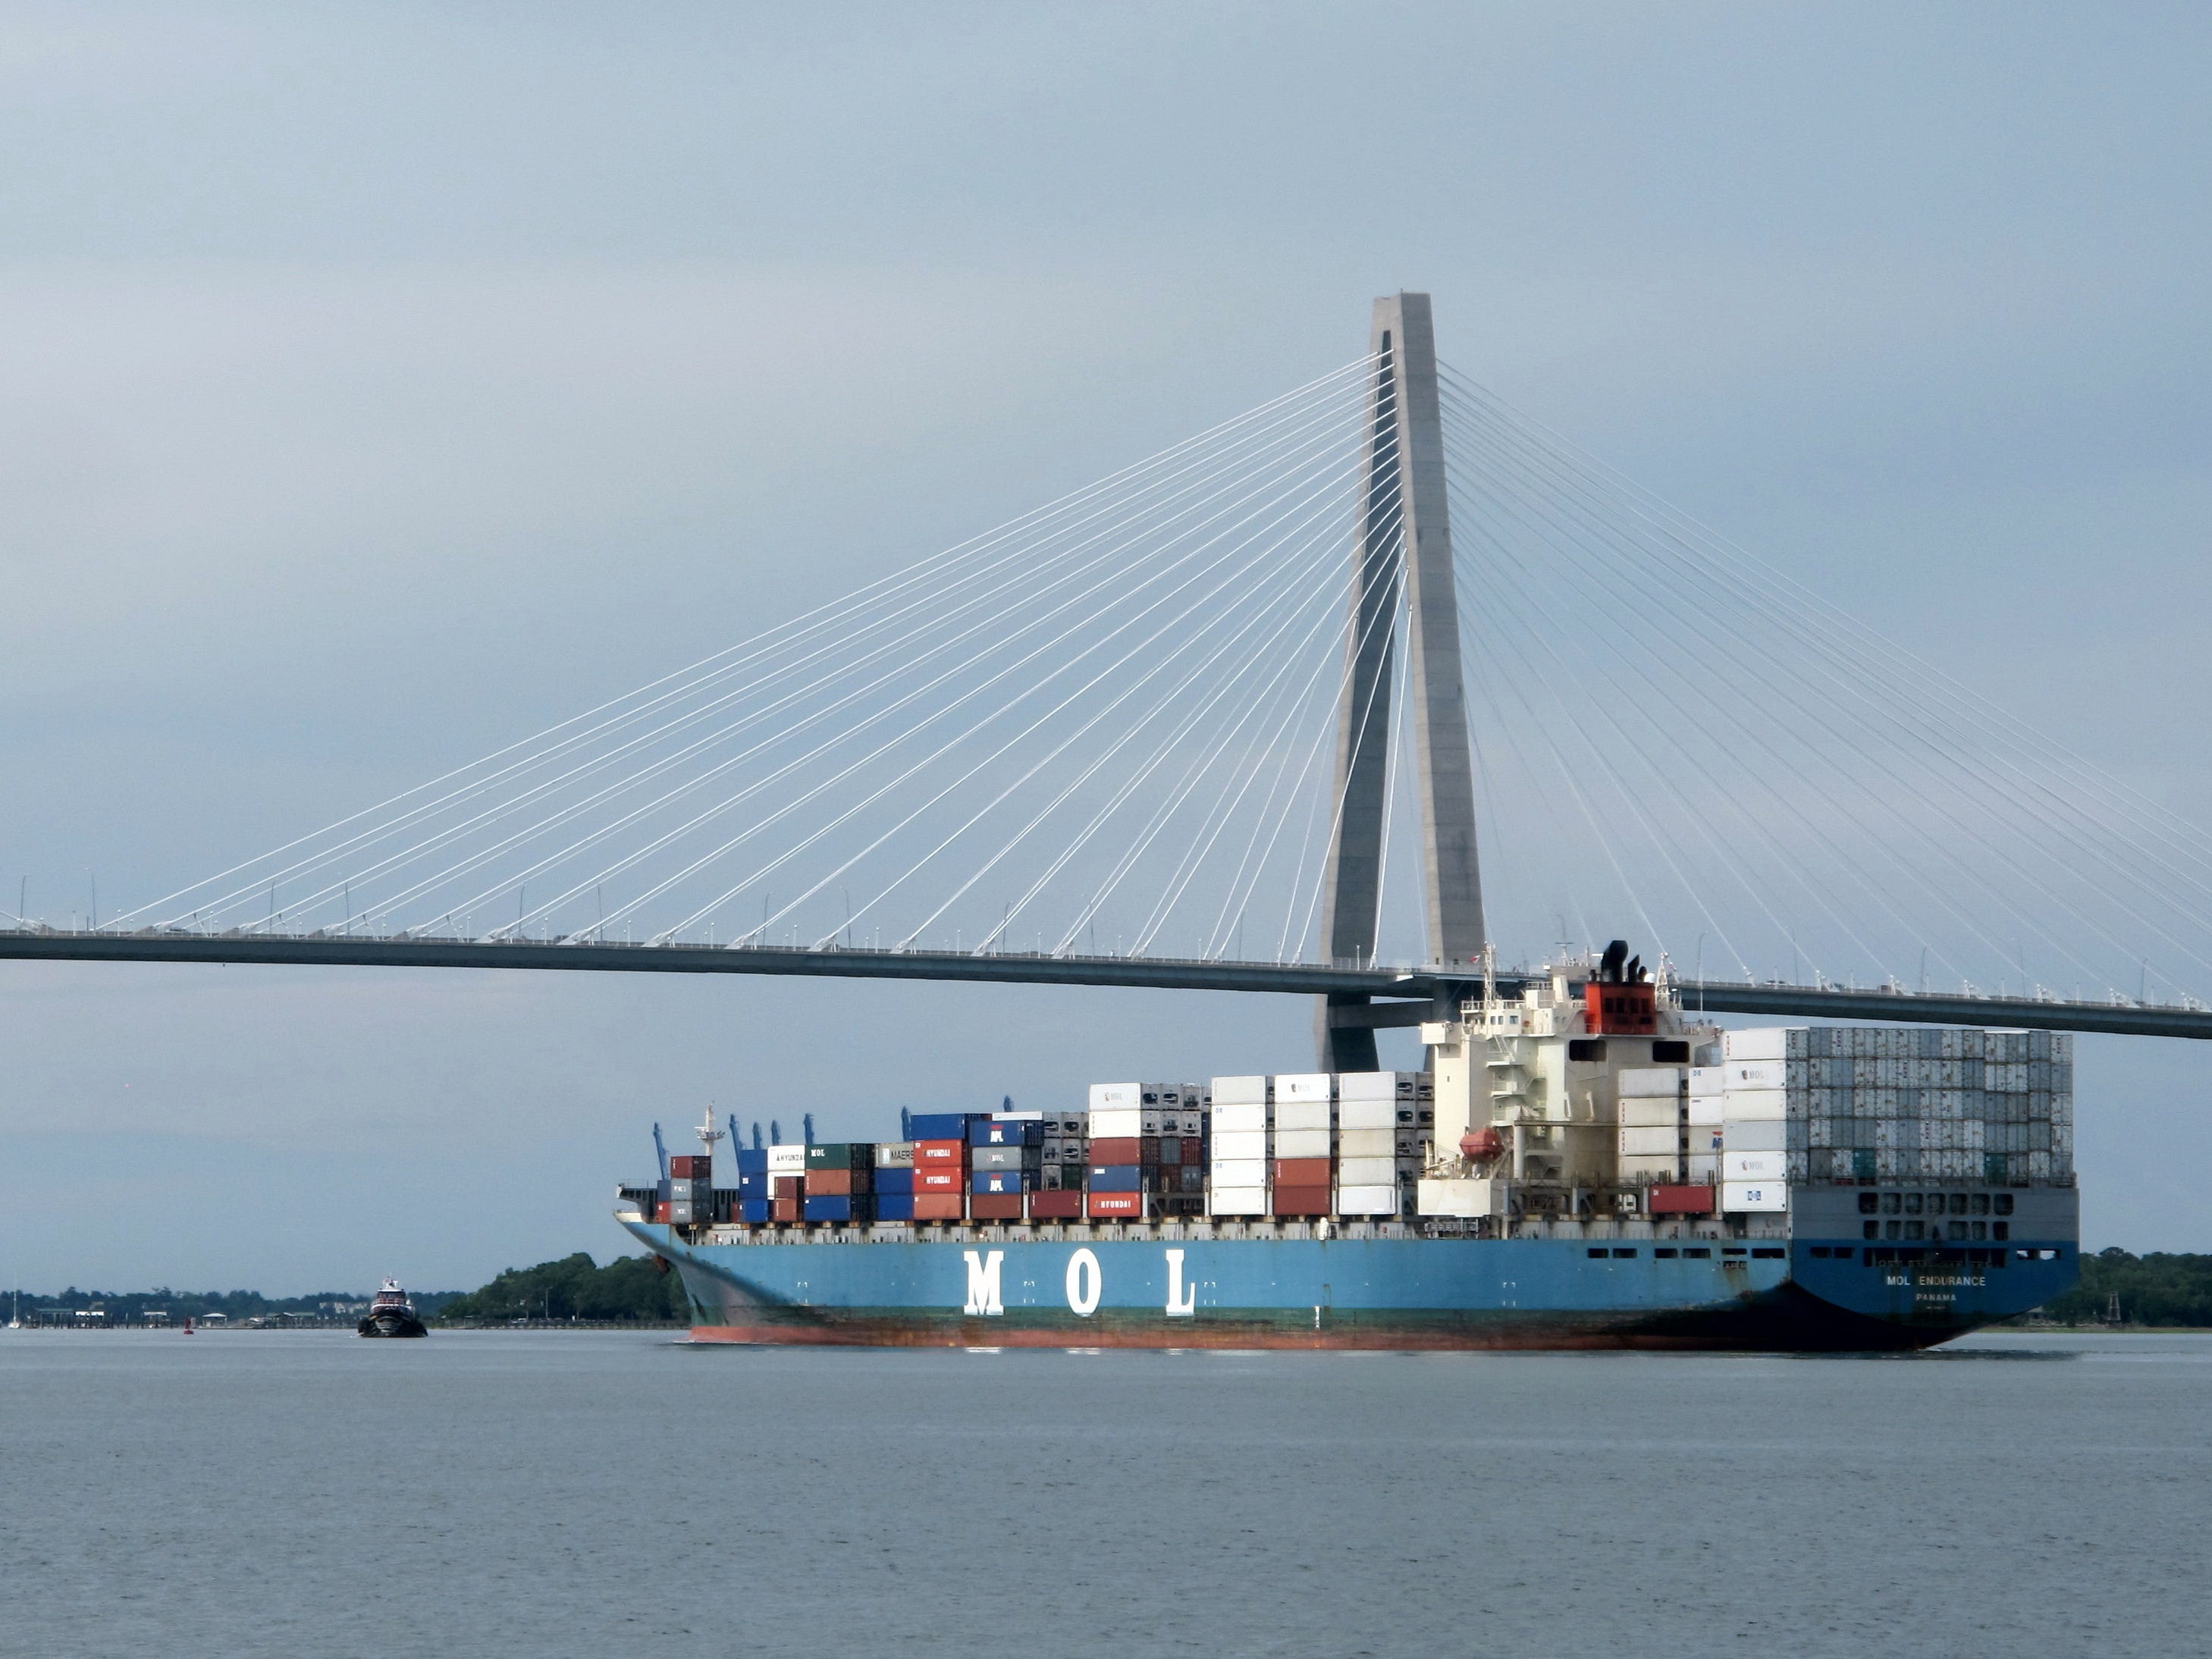 About two-fifths of container port traffic in Charleston, S.C. through this area could take a hit, according to Panjiva, S&P Global Market Intelligence.